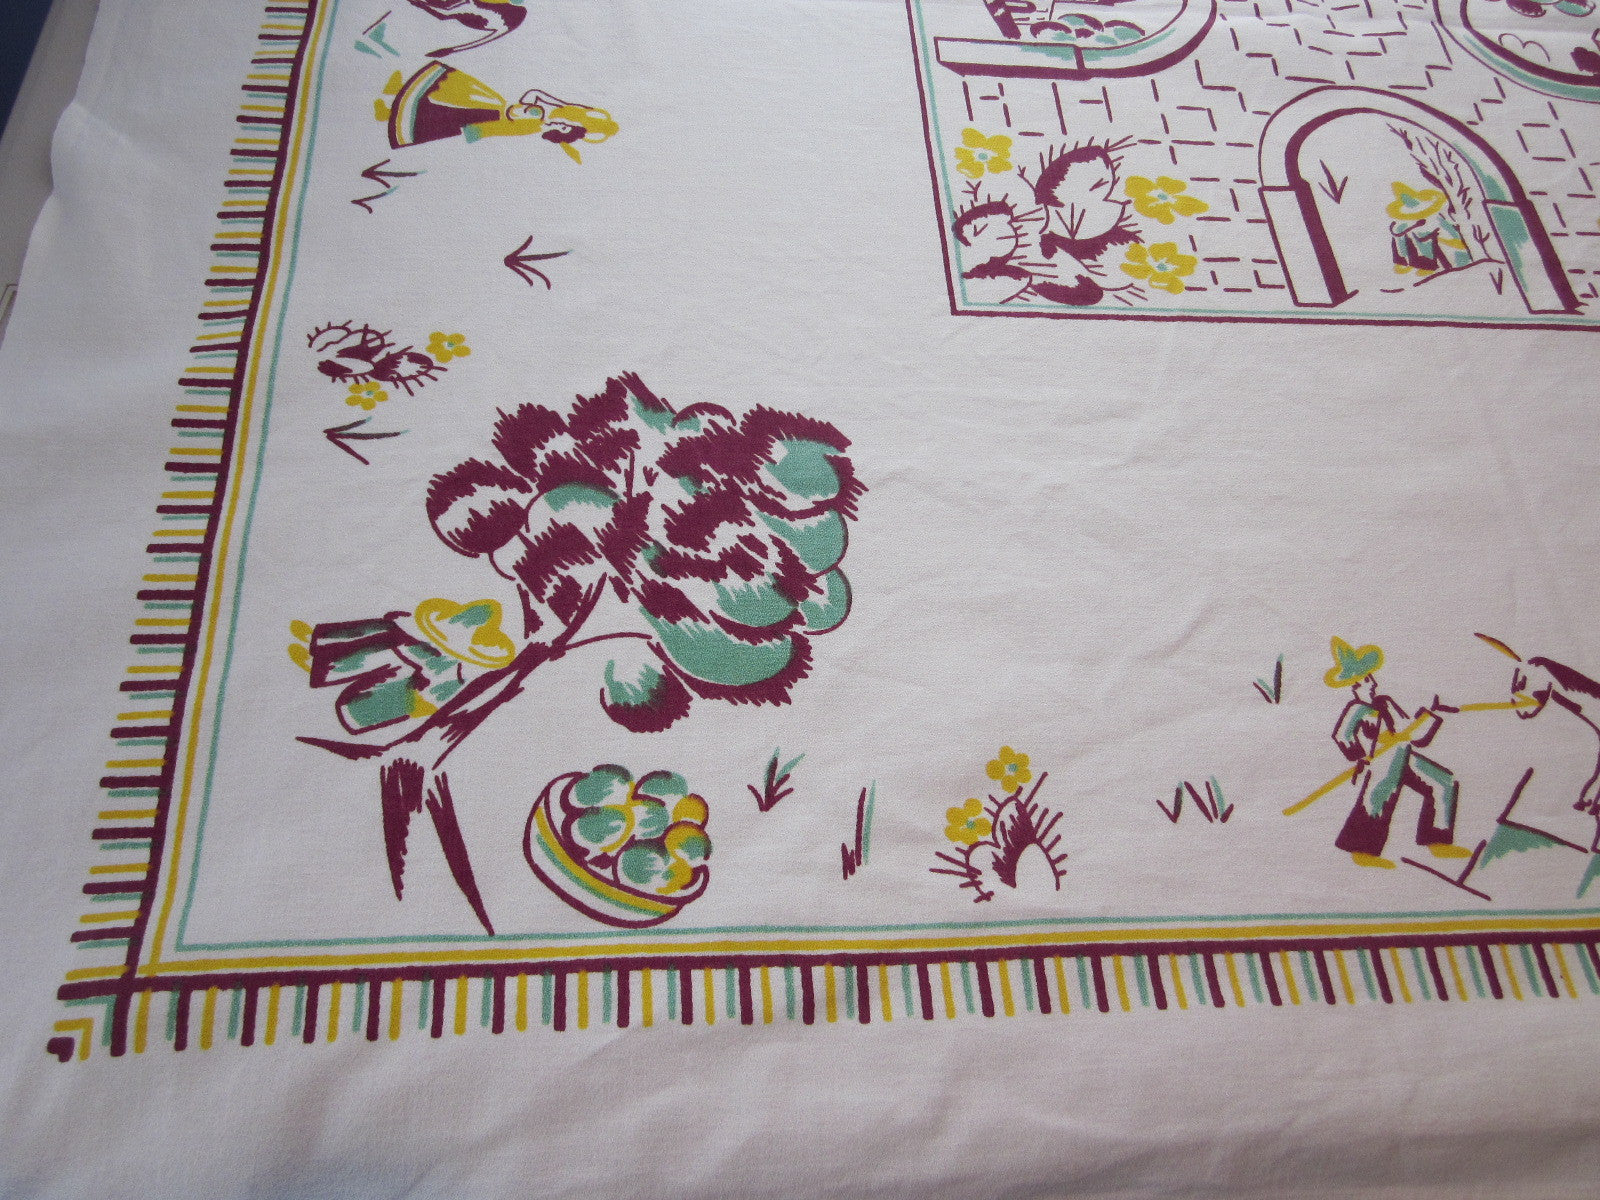 Unusual Gold Magenta Mexican Novelty Vintage Printed Tablecloth (49 X 46)